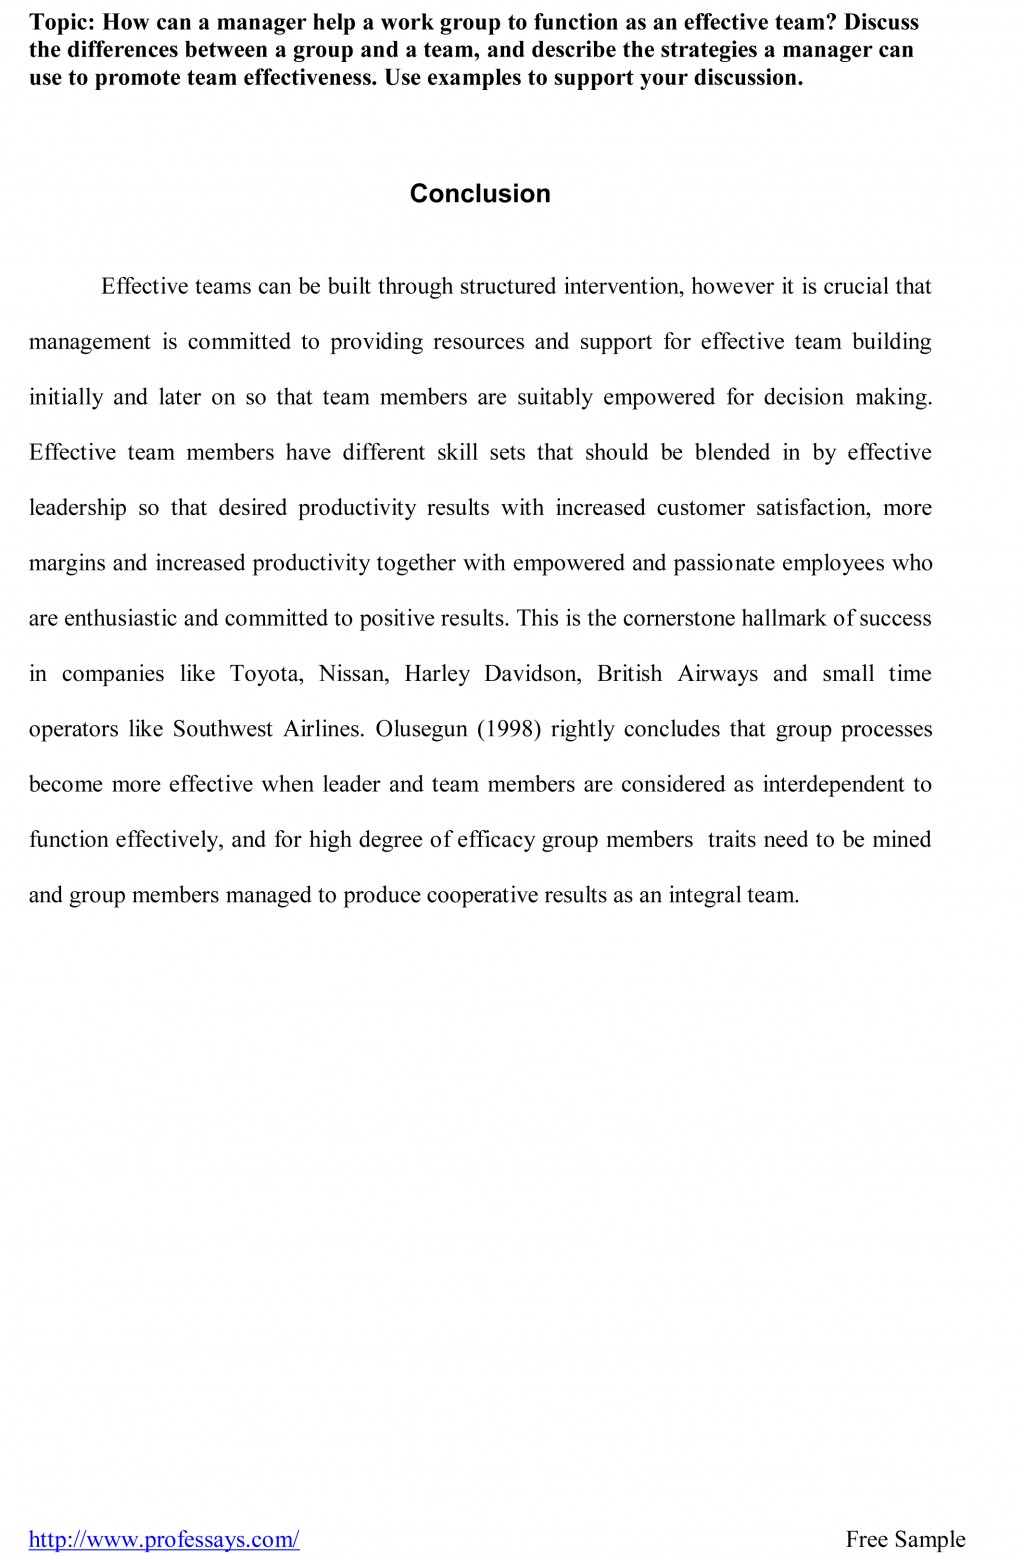 002 Conclusion Help Research Paper Sample For Amazing Large